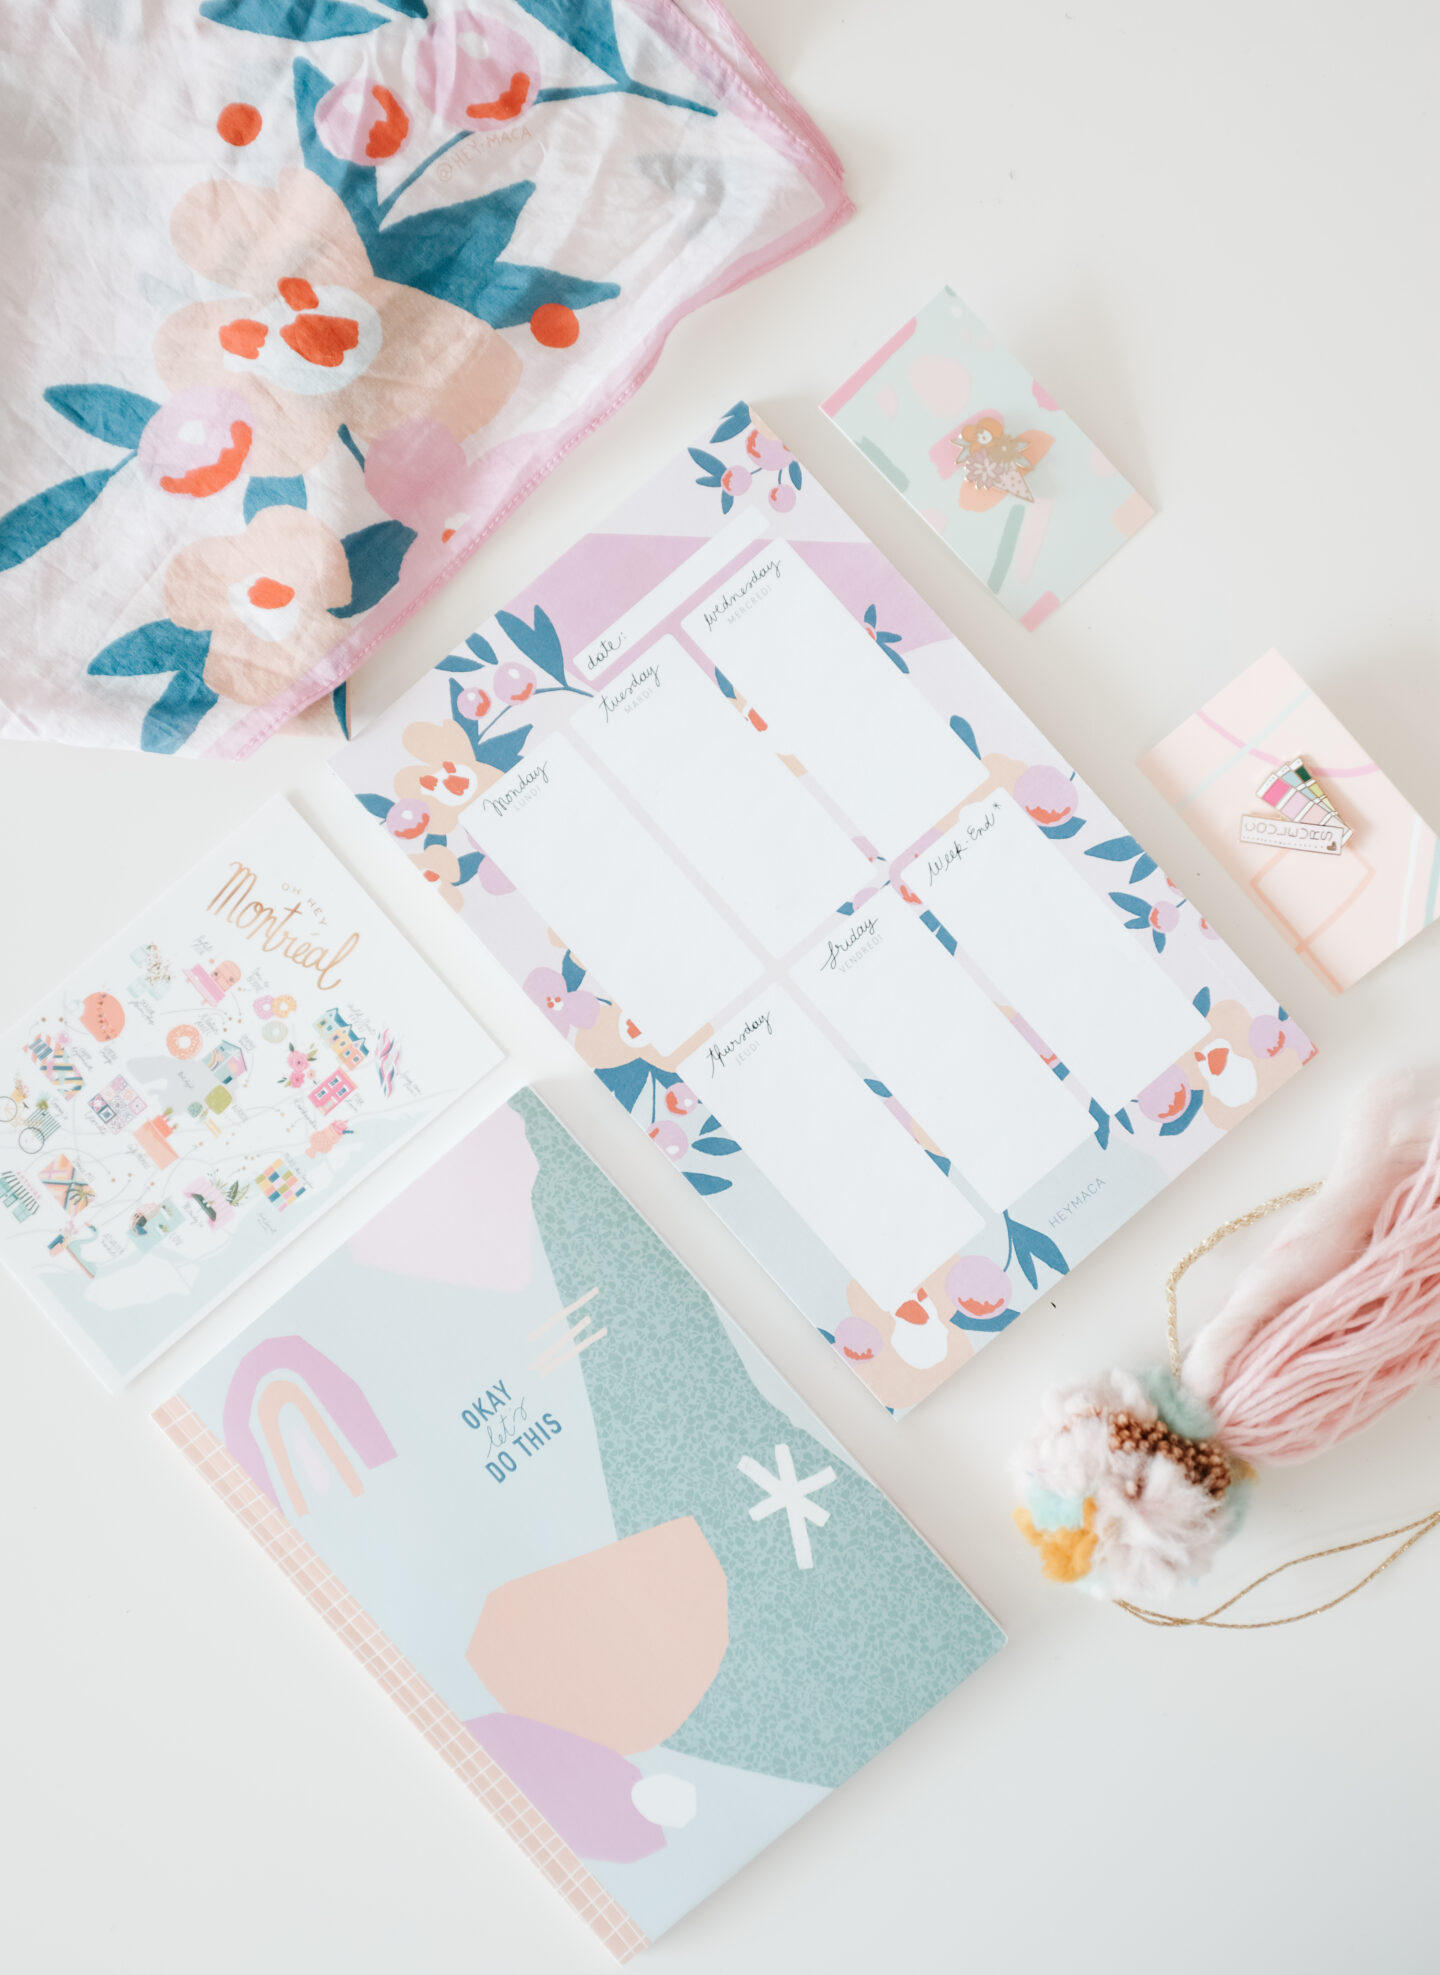 A pastel Stationary collection: HeyMaca Products